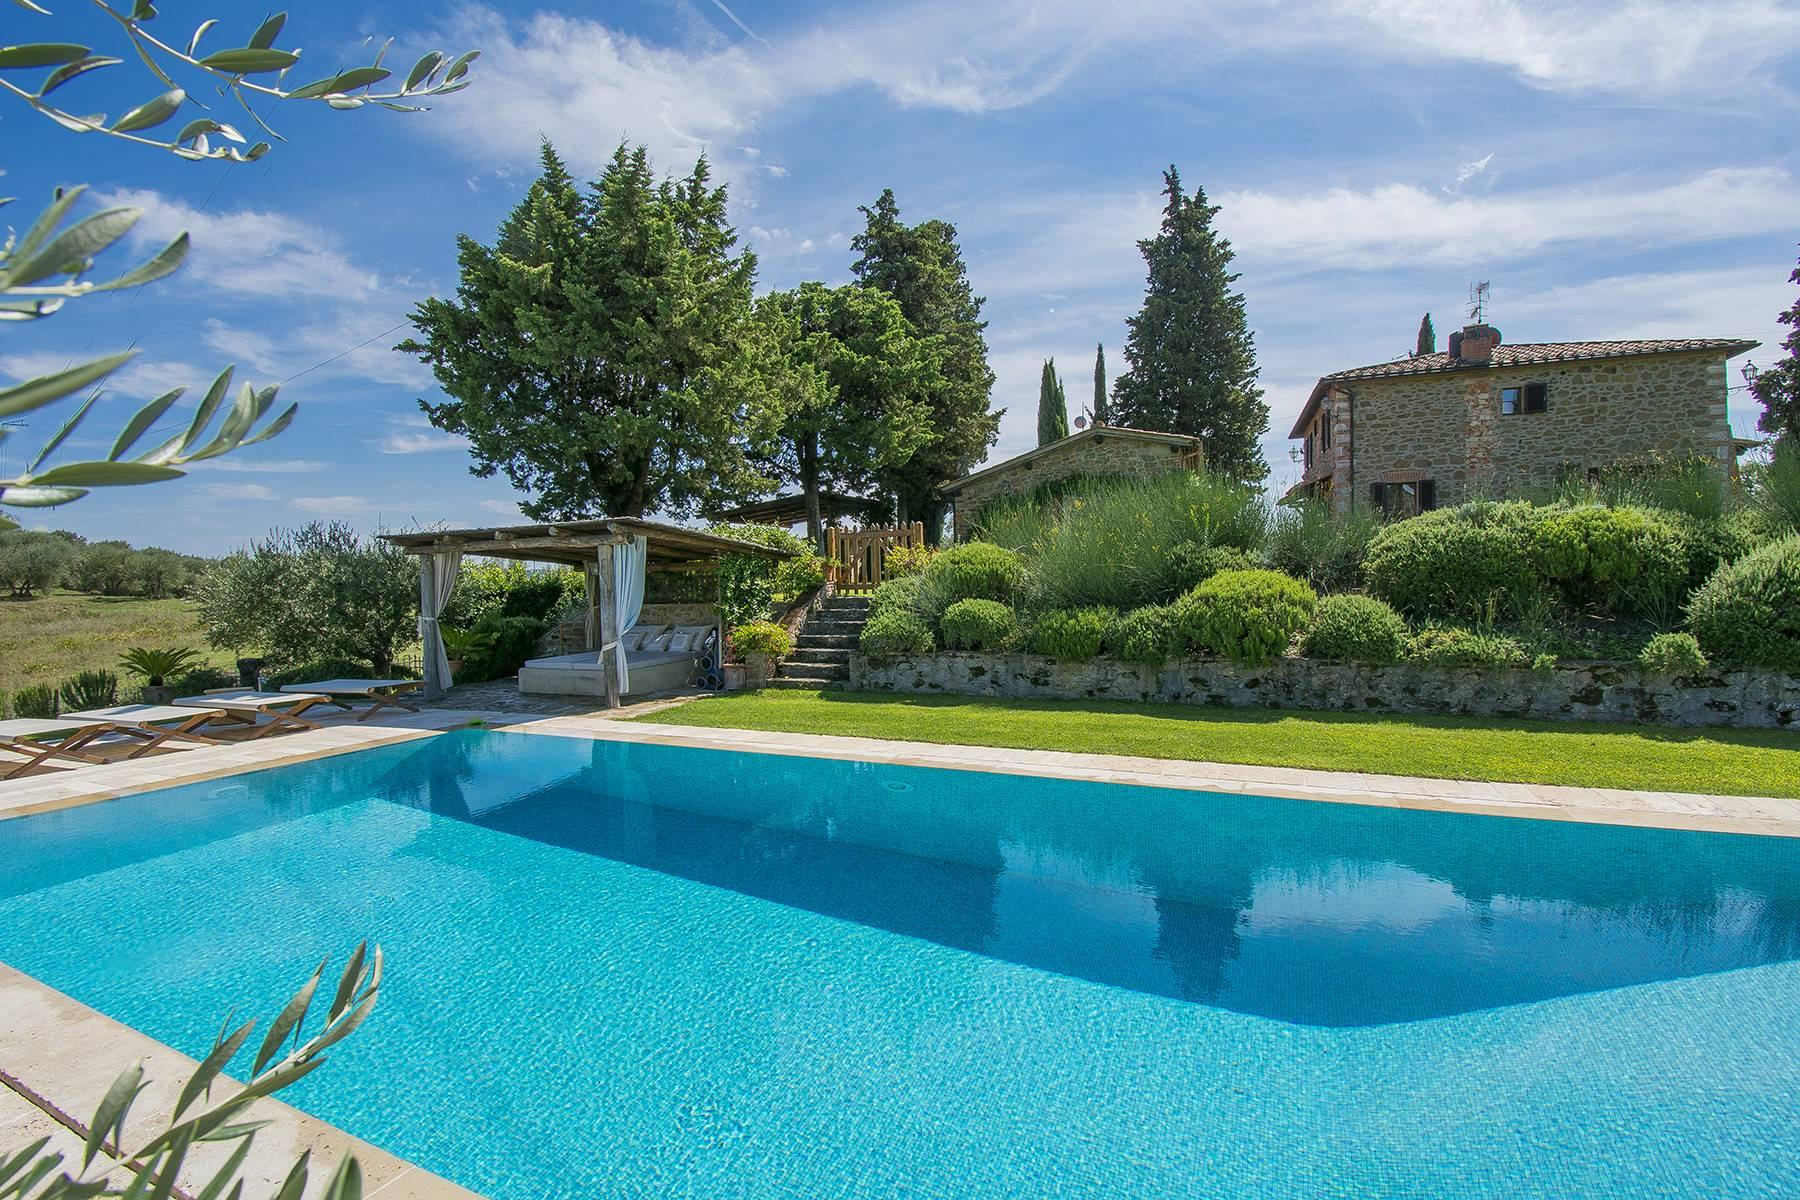 House in the Tuscan Hills for Sale - 3